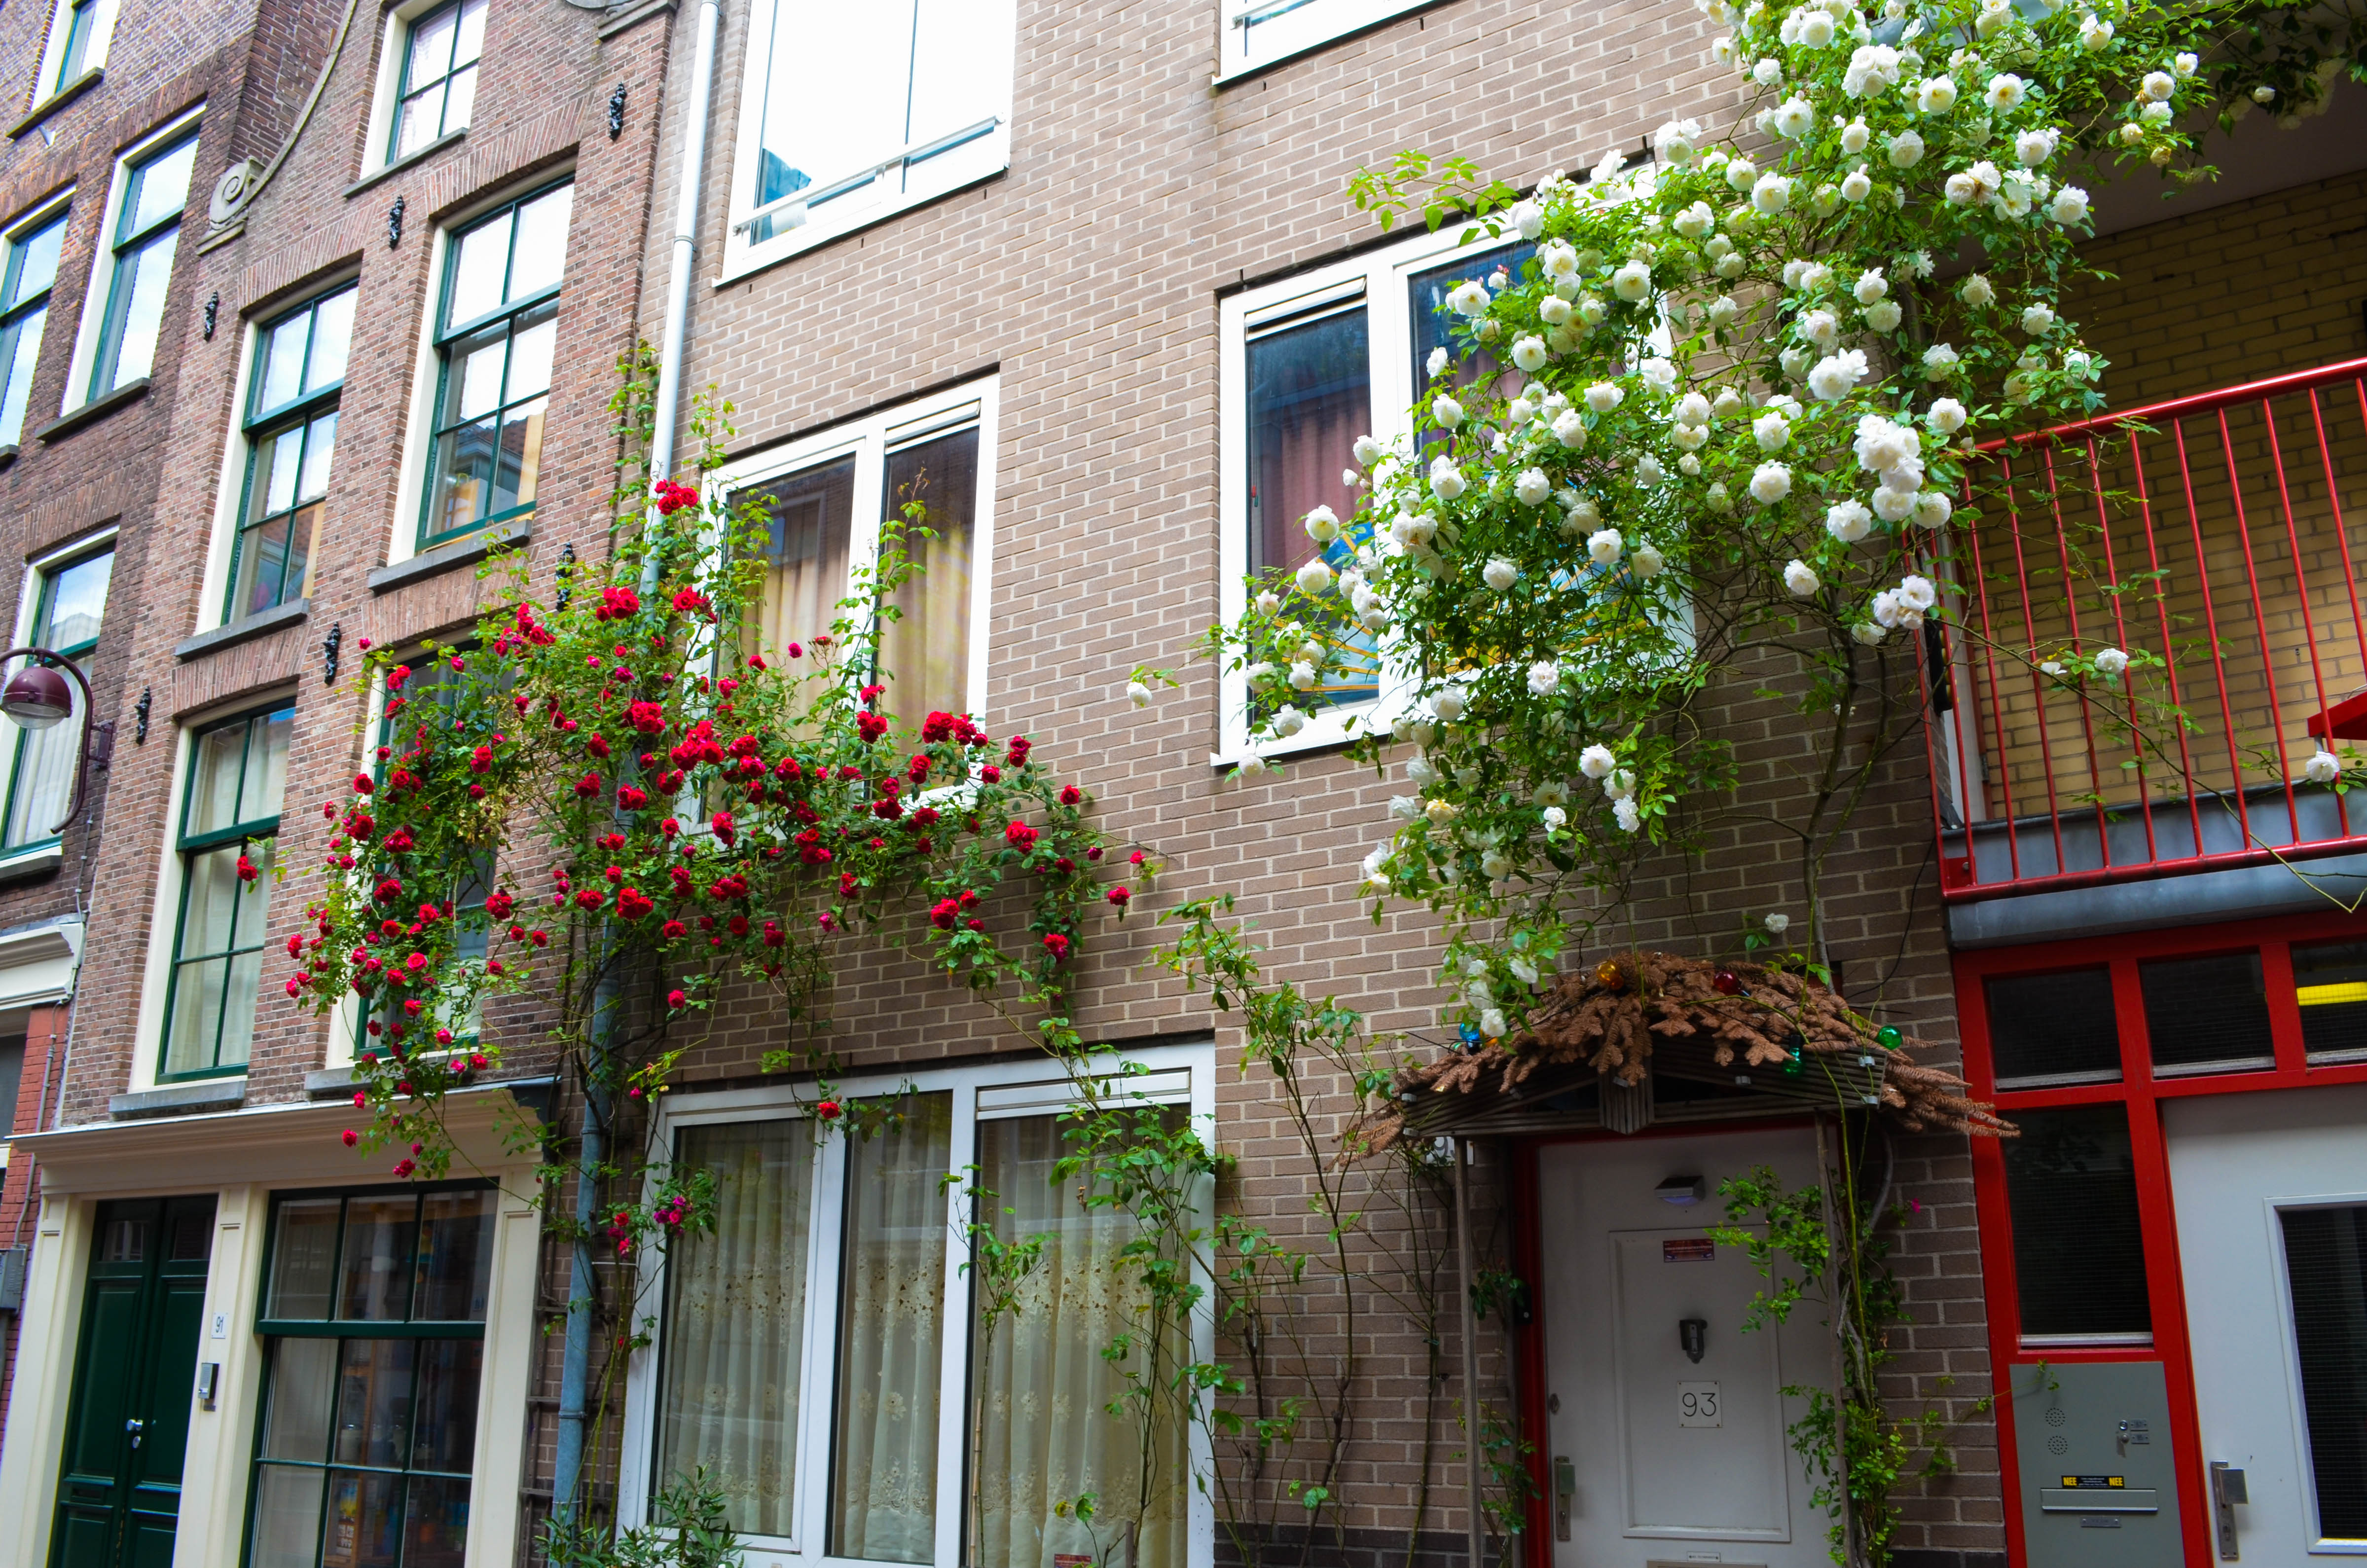 Our Neighborhood in Amsterdam